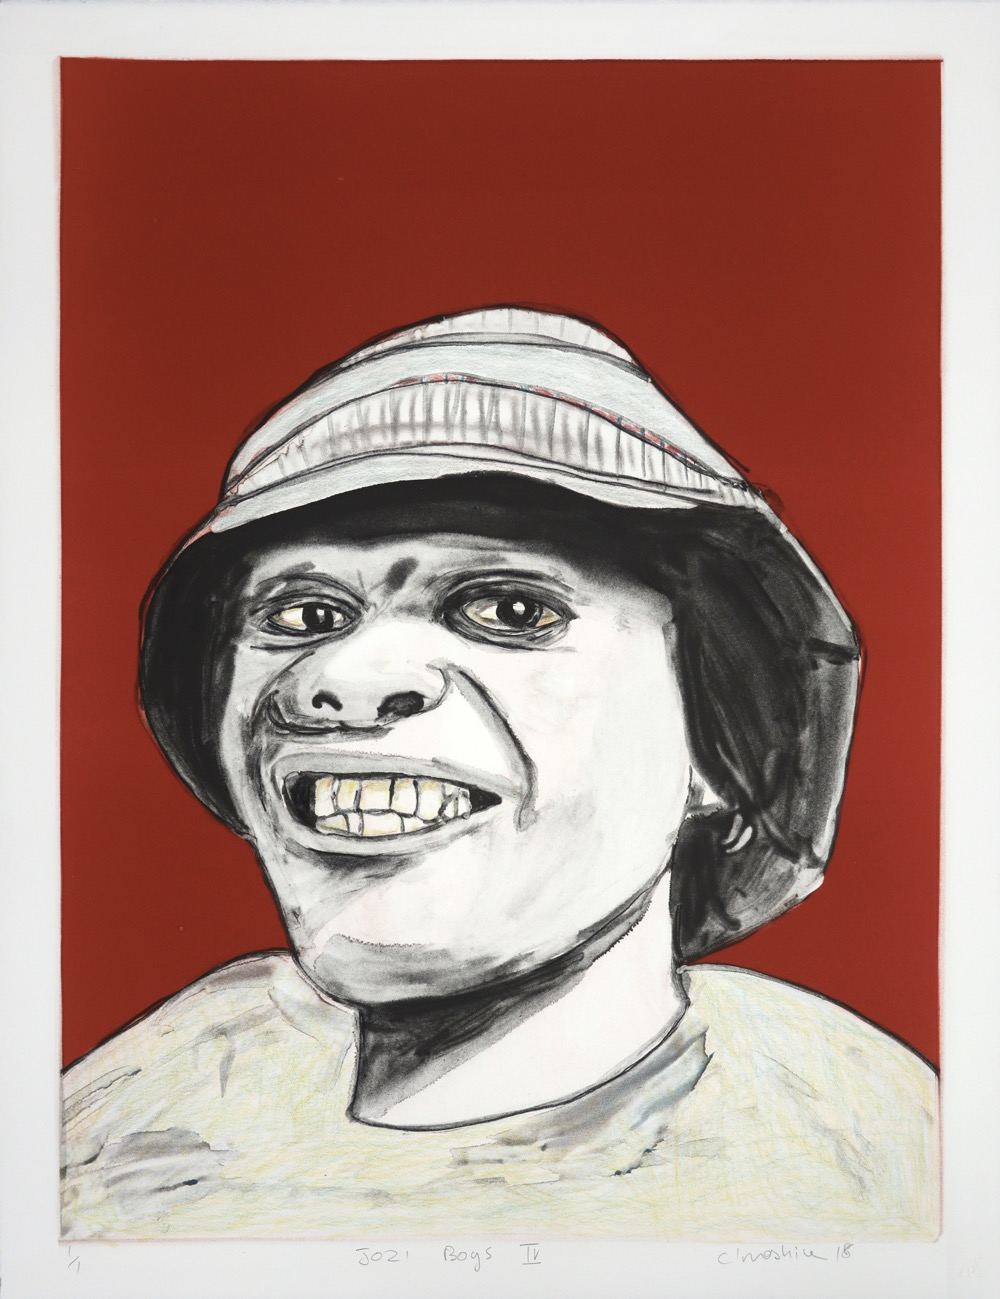 Smiling young man in bucket hat looking directly at the viewer.